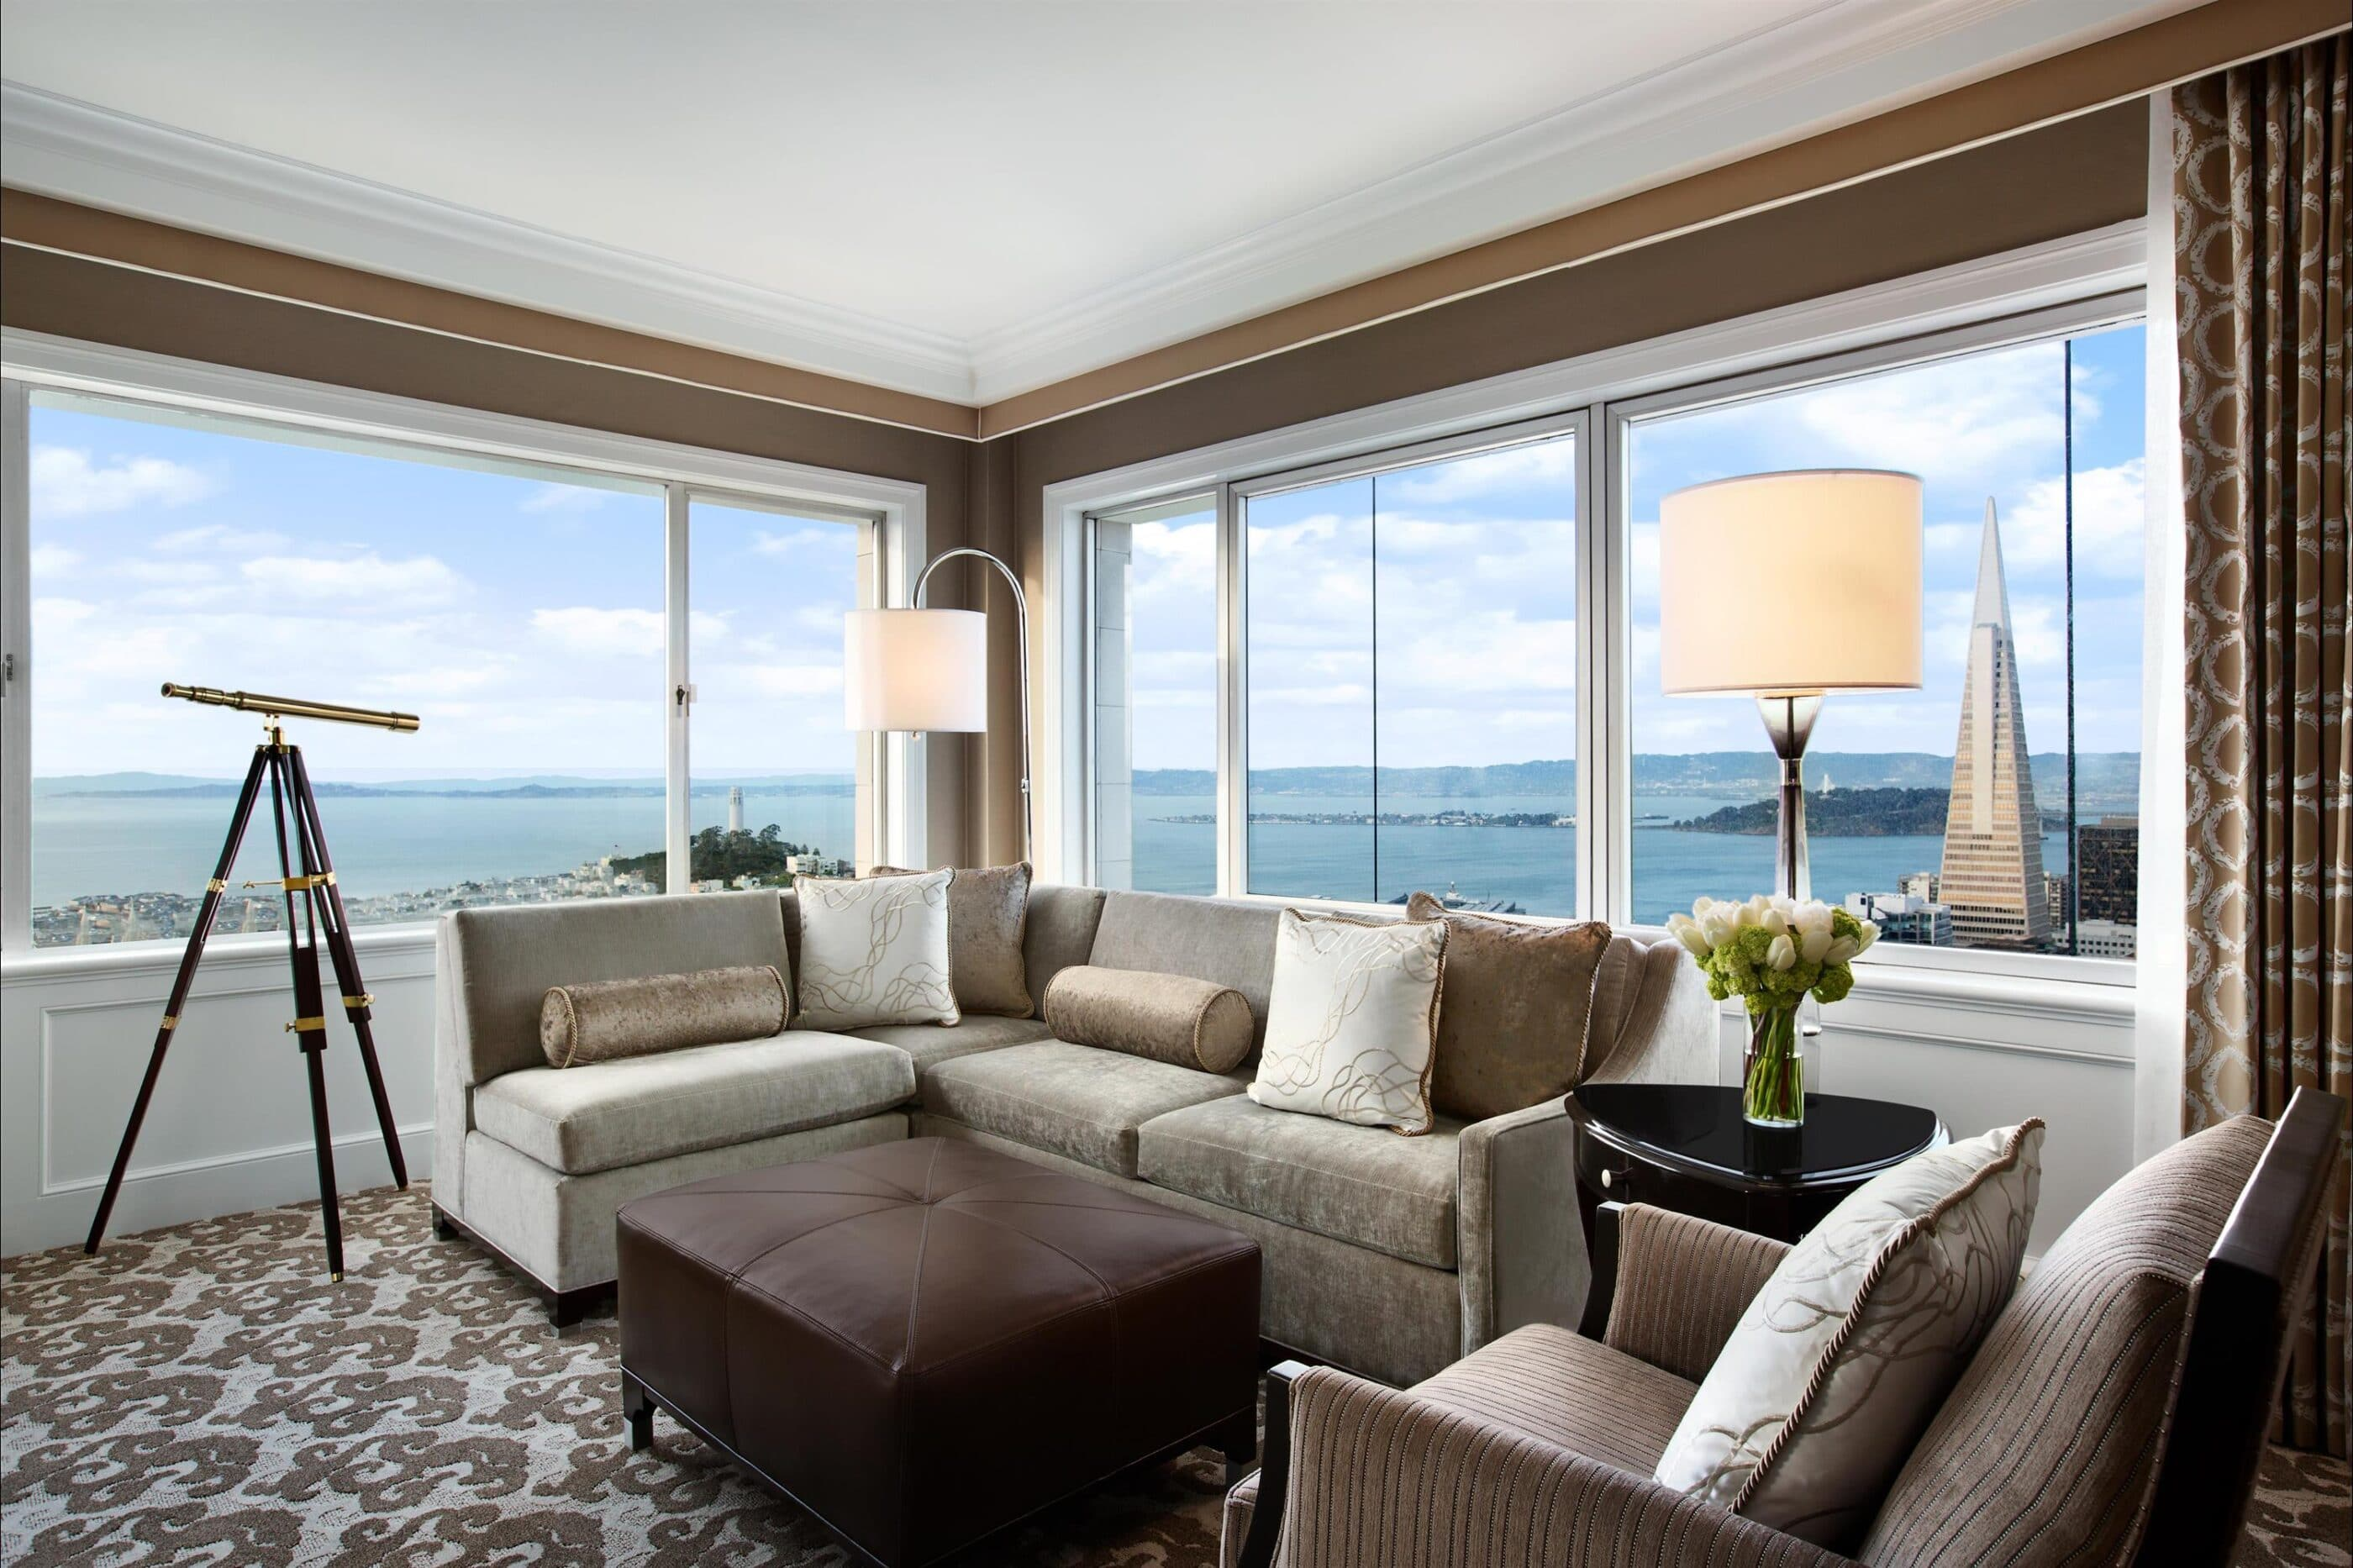 Fairmont San Francisco hotel suite with a view of the bay.